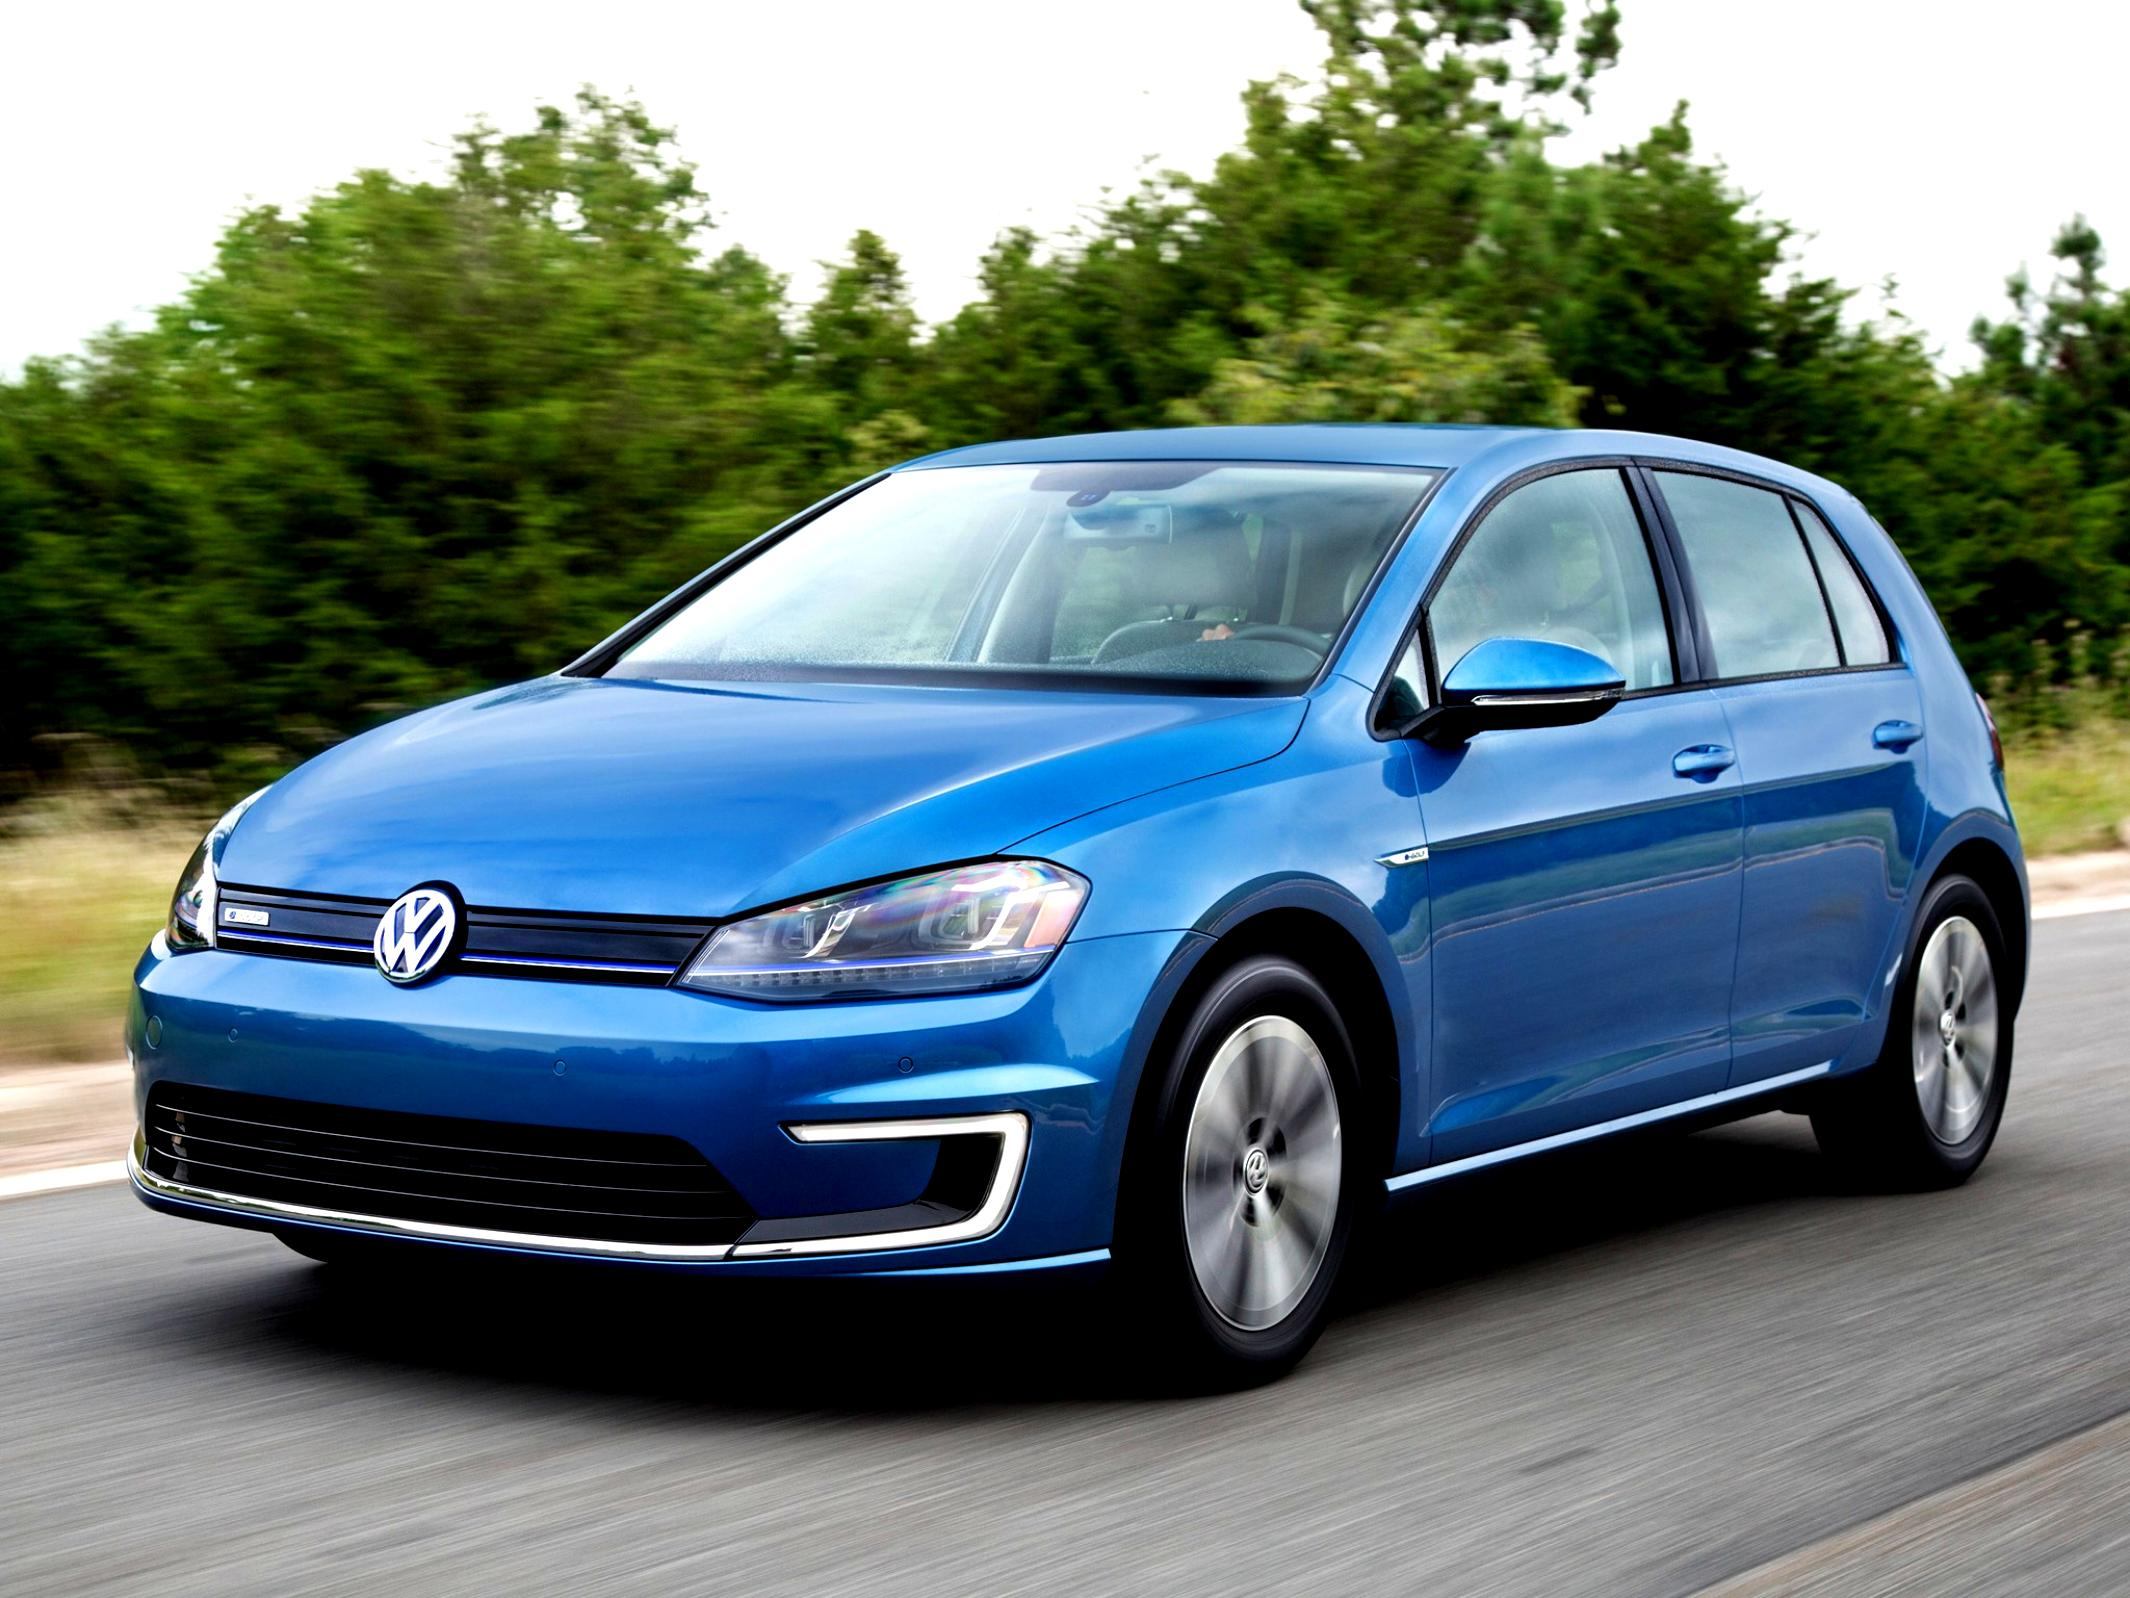 Volkswagen E-Golf 2014 #52